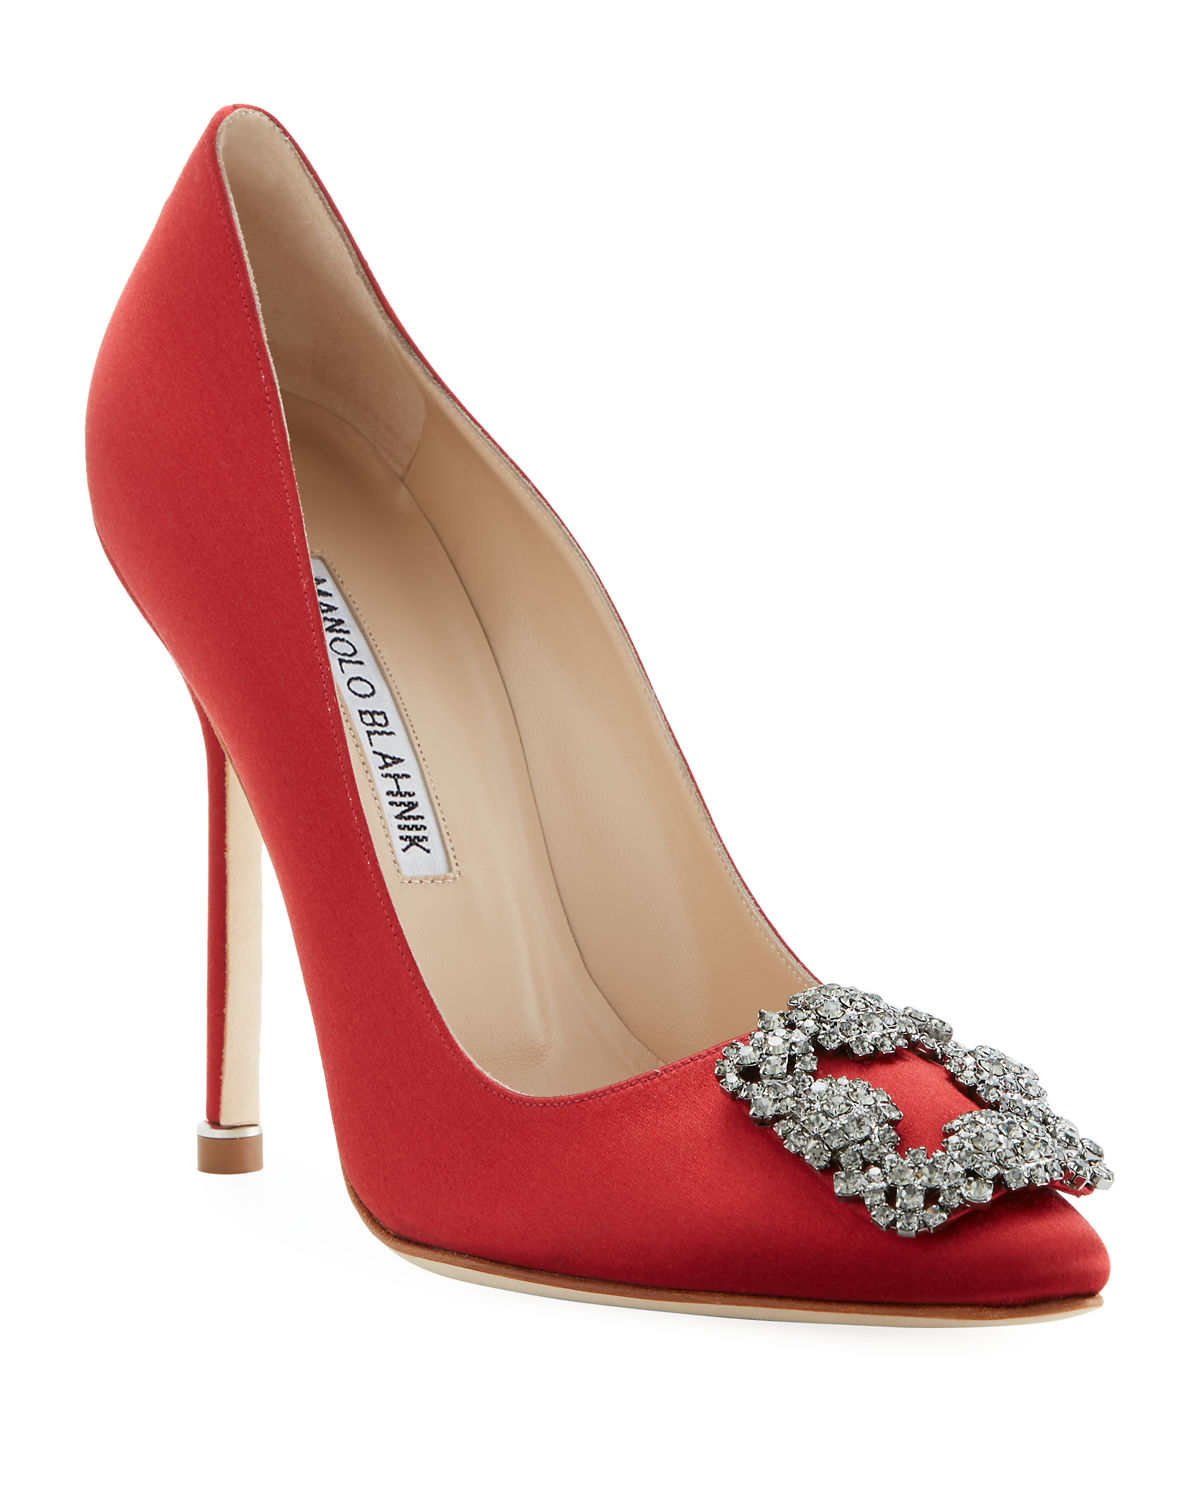 13bacf458644 Manolo Blahnik Hangisi 115mm Satin Crystal-Toe Pump